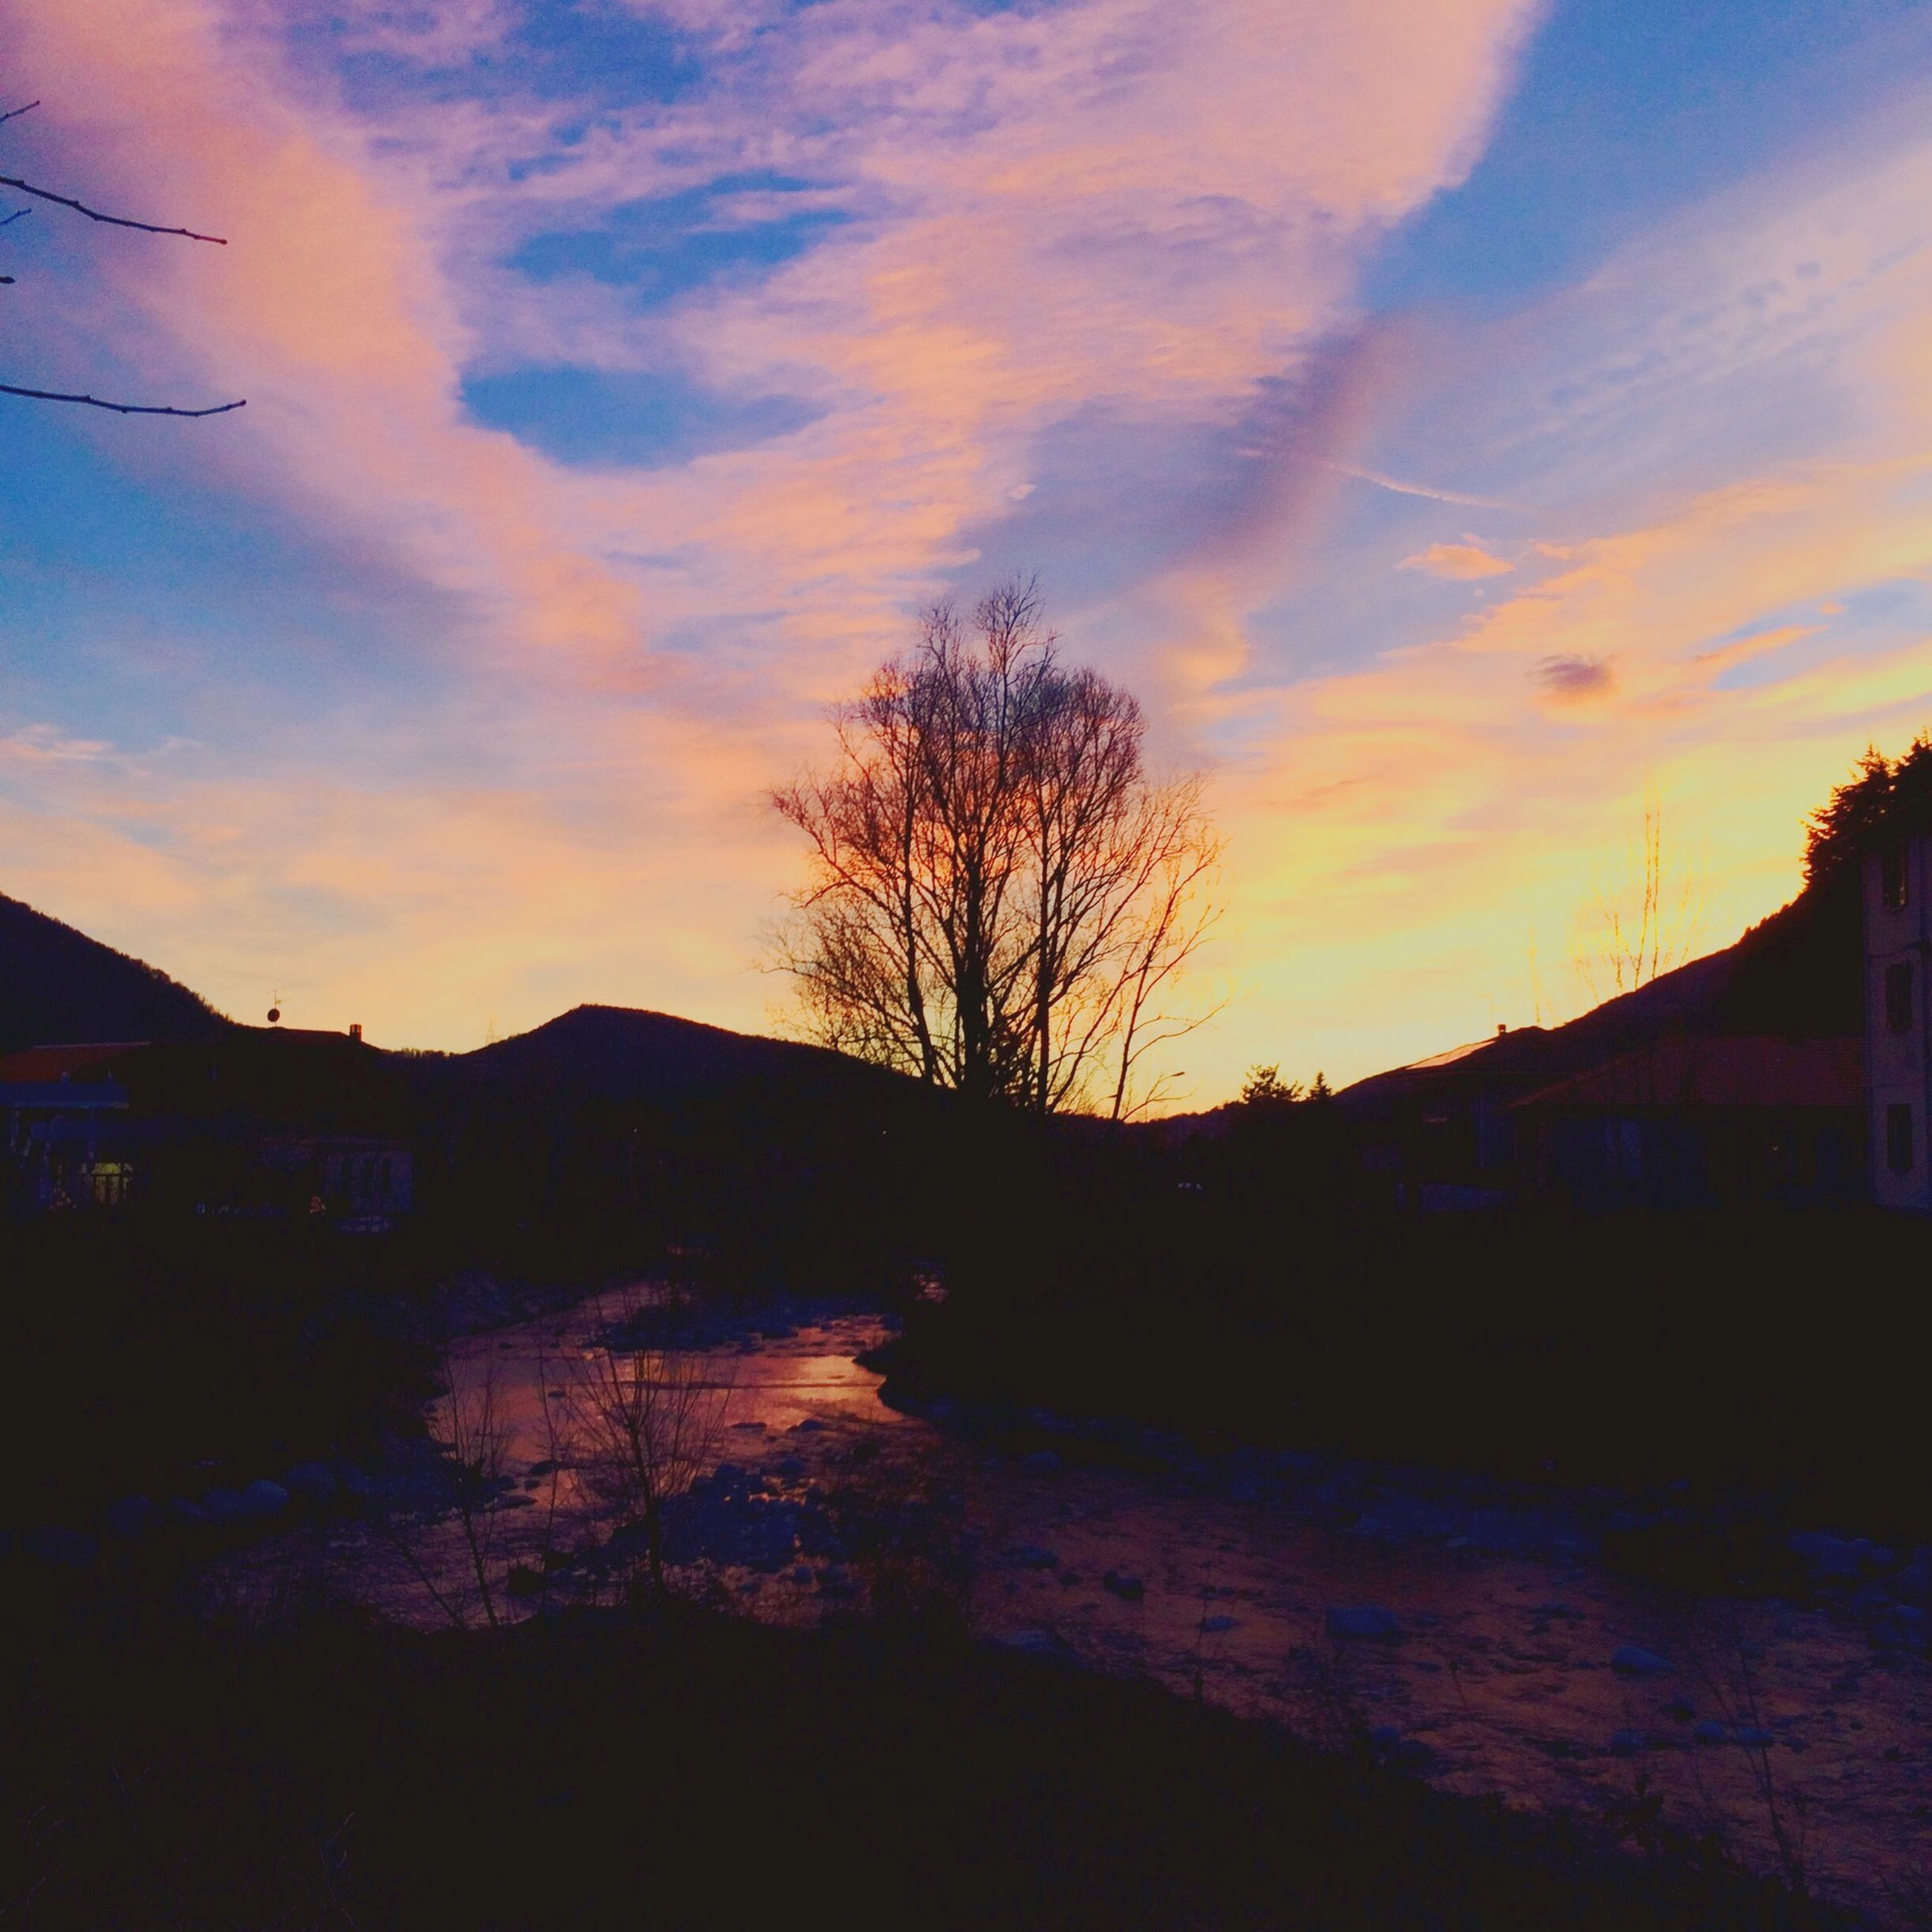 sunset, silhouette, sky, tranquil scene, scenics, tree, tranquility, beauty in nature, orange color, cloud - sky, water, nature, bare tree, built structure, idyllic, mountain, cloud, river, architecture, dusk